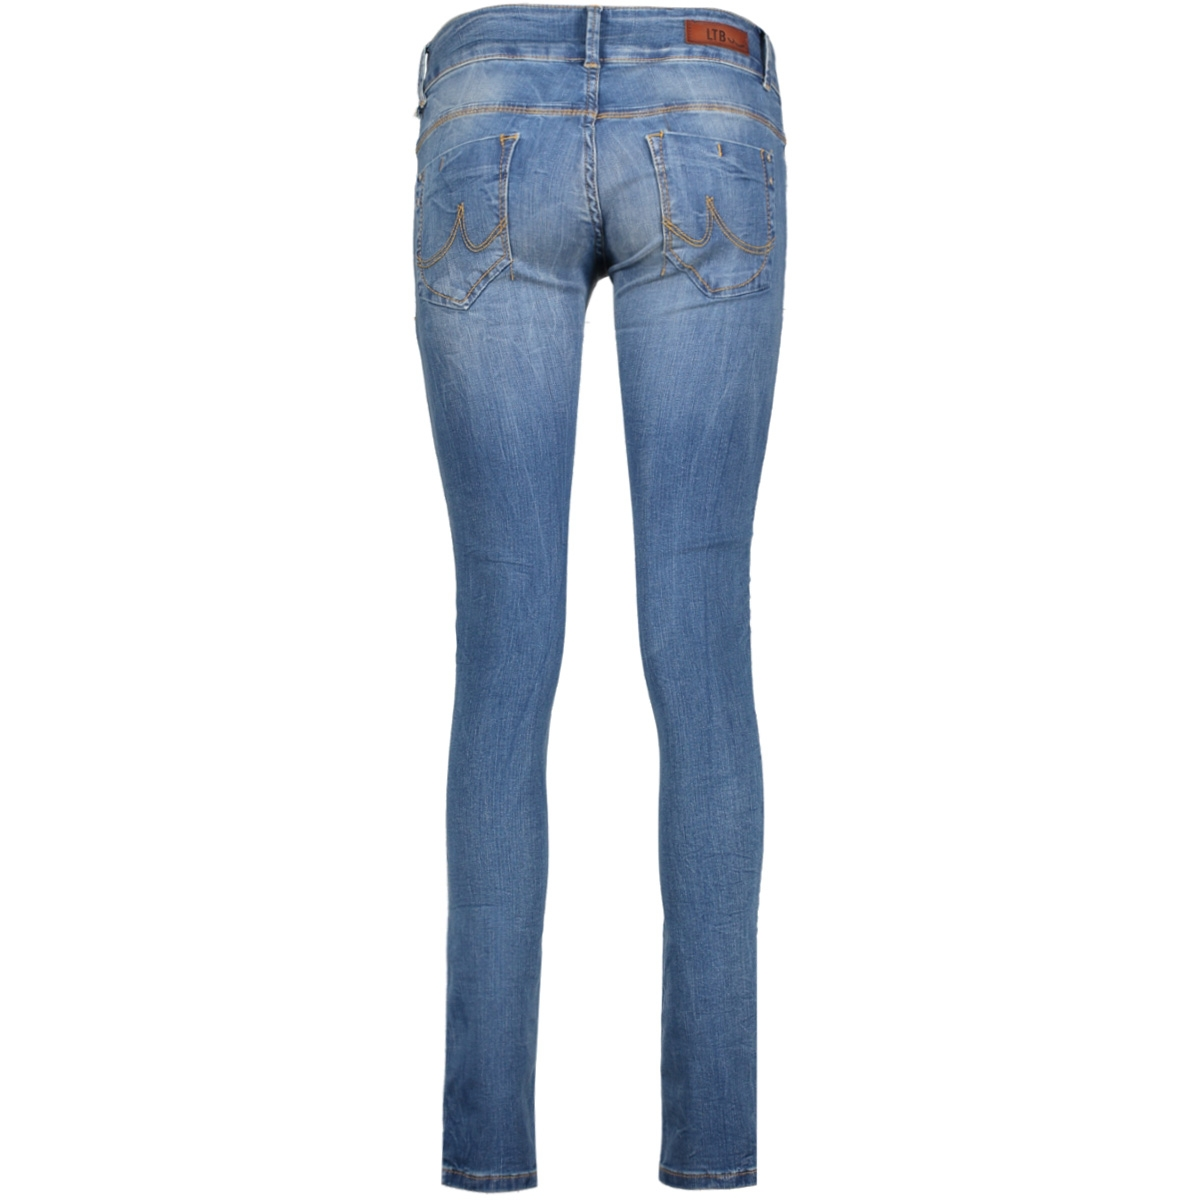 10095065.13505 molly ltb jeans calissa wash